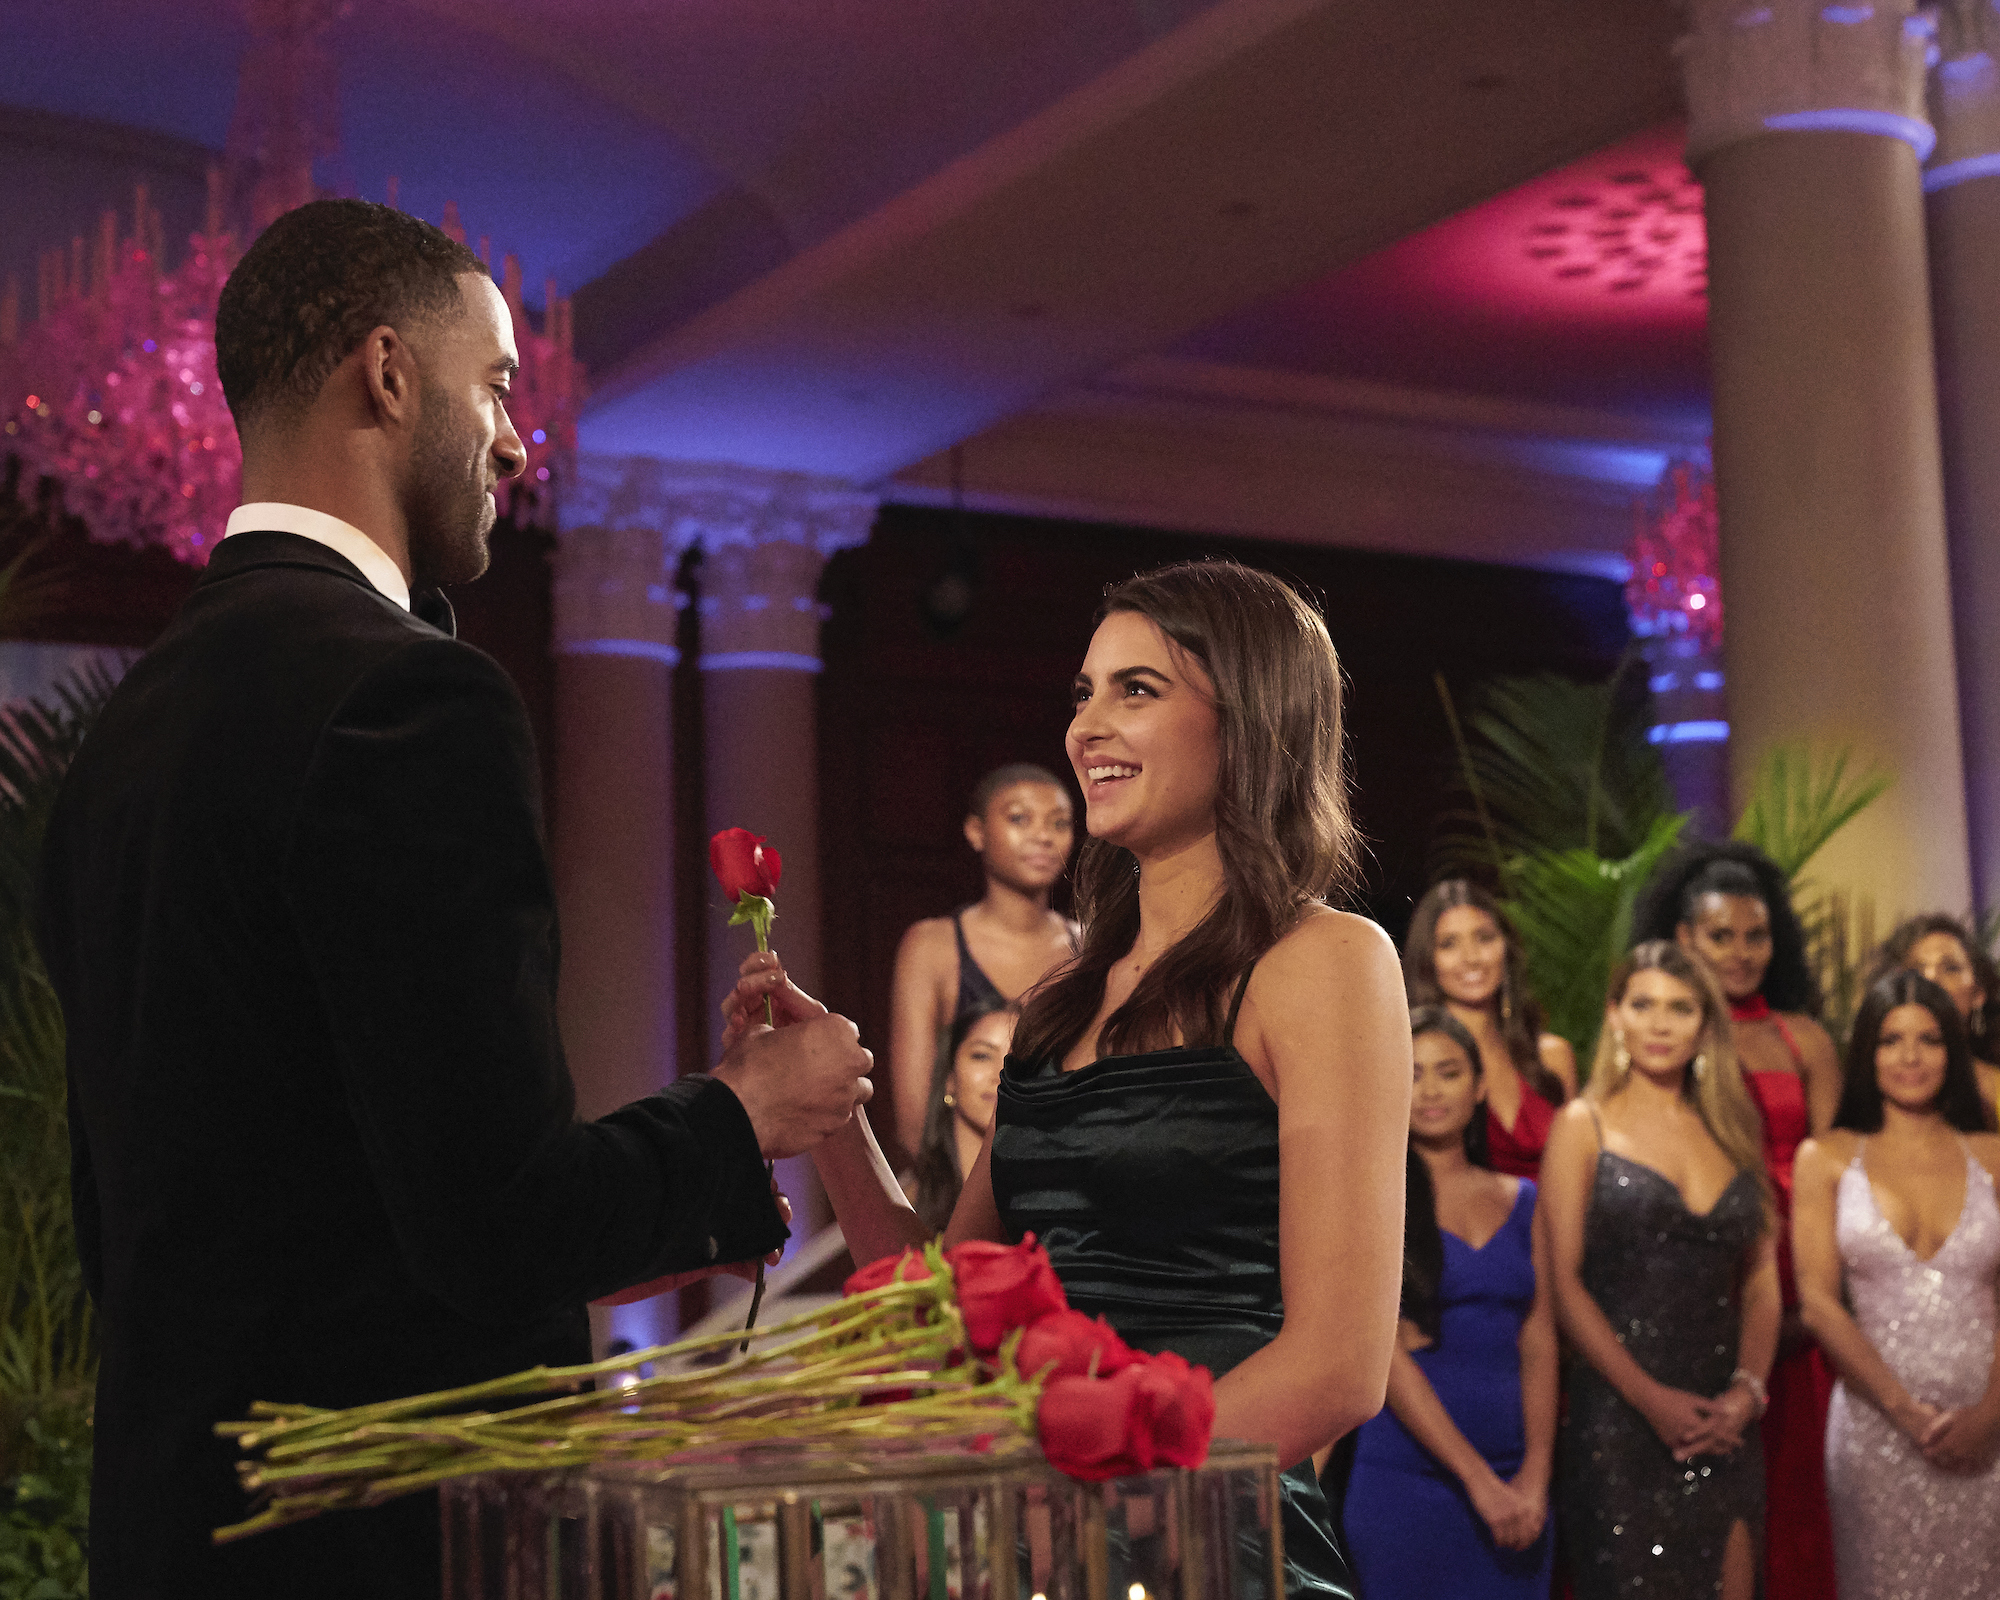 Matt James and Rachael Kirkconnell on 'THE BACHELOR' during a rose ceremony